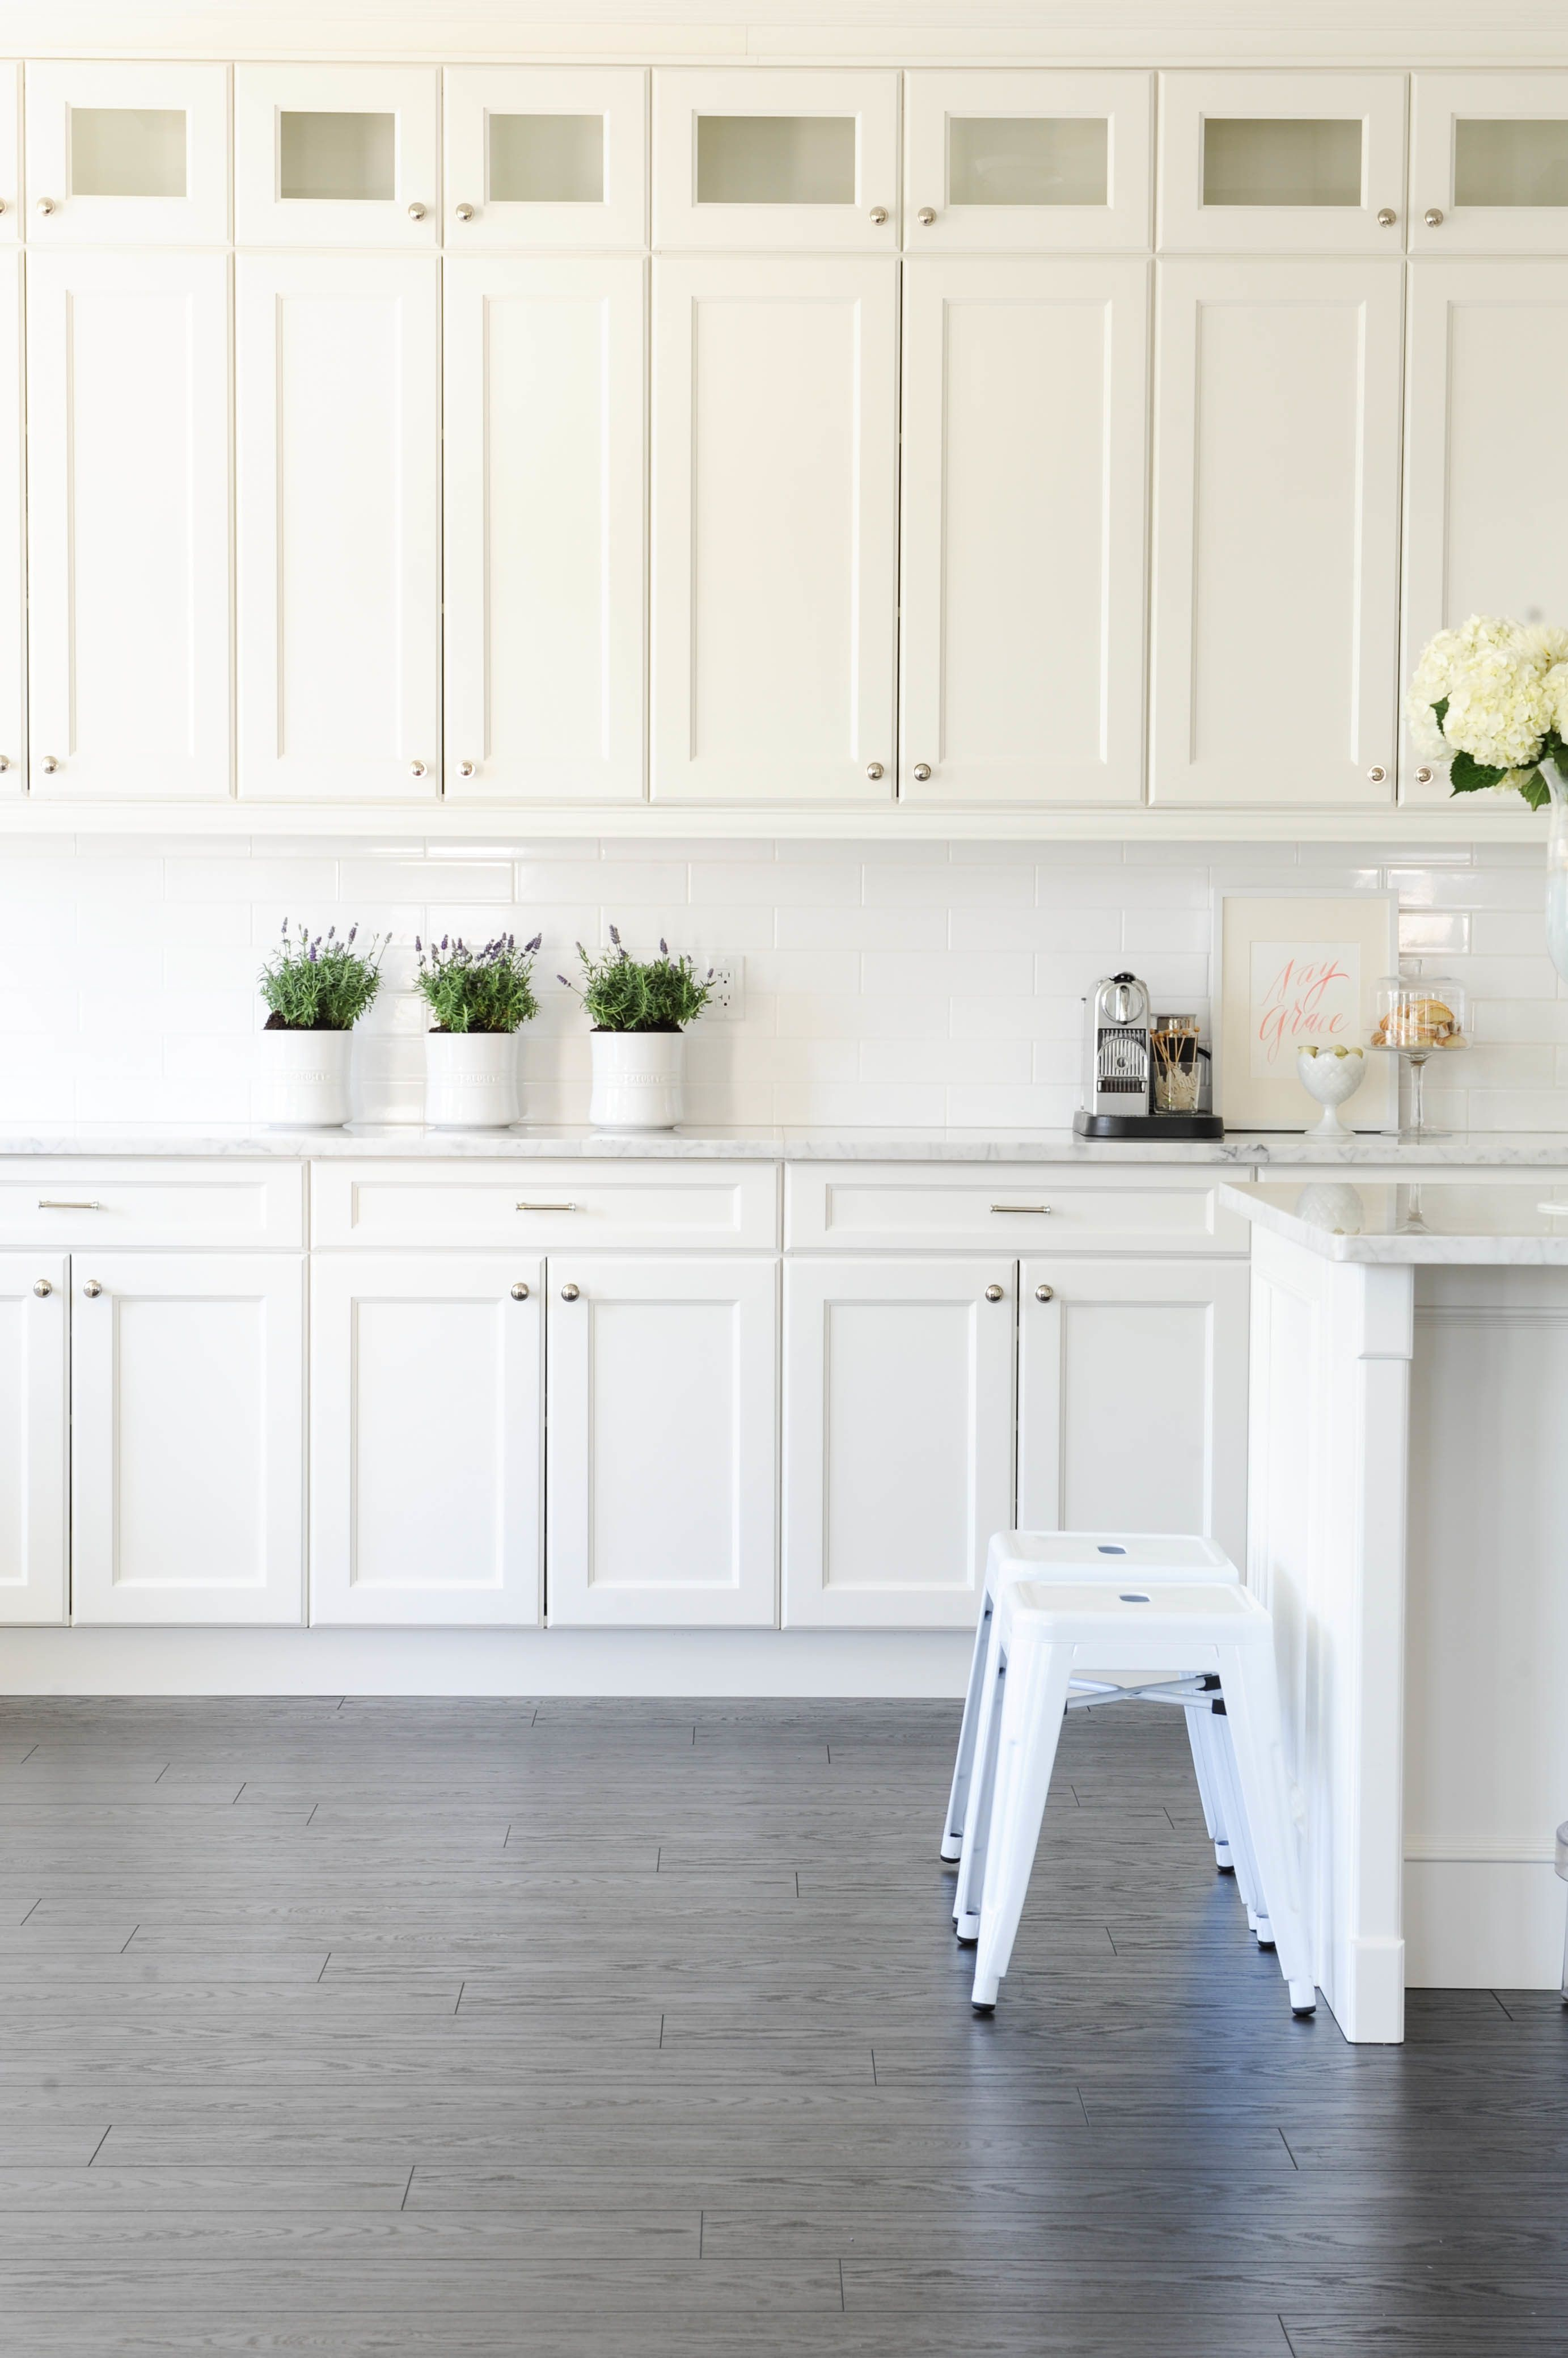 Kitchen kitchencabinets white photography tracey ayton